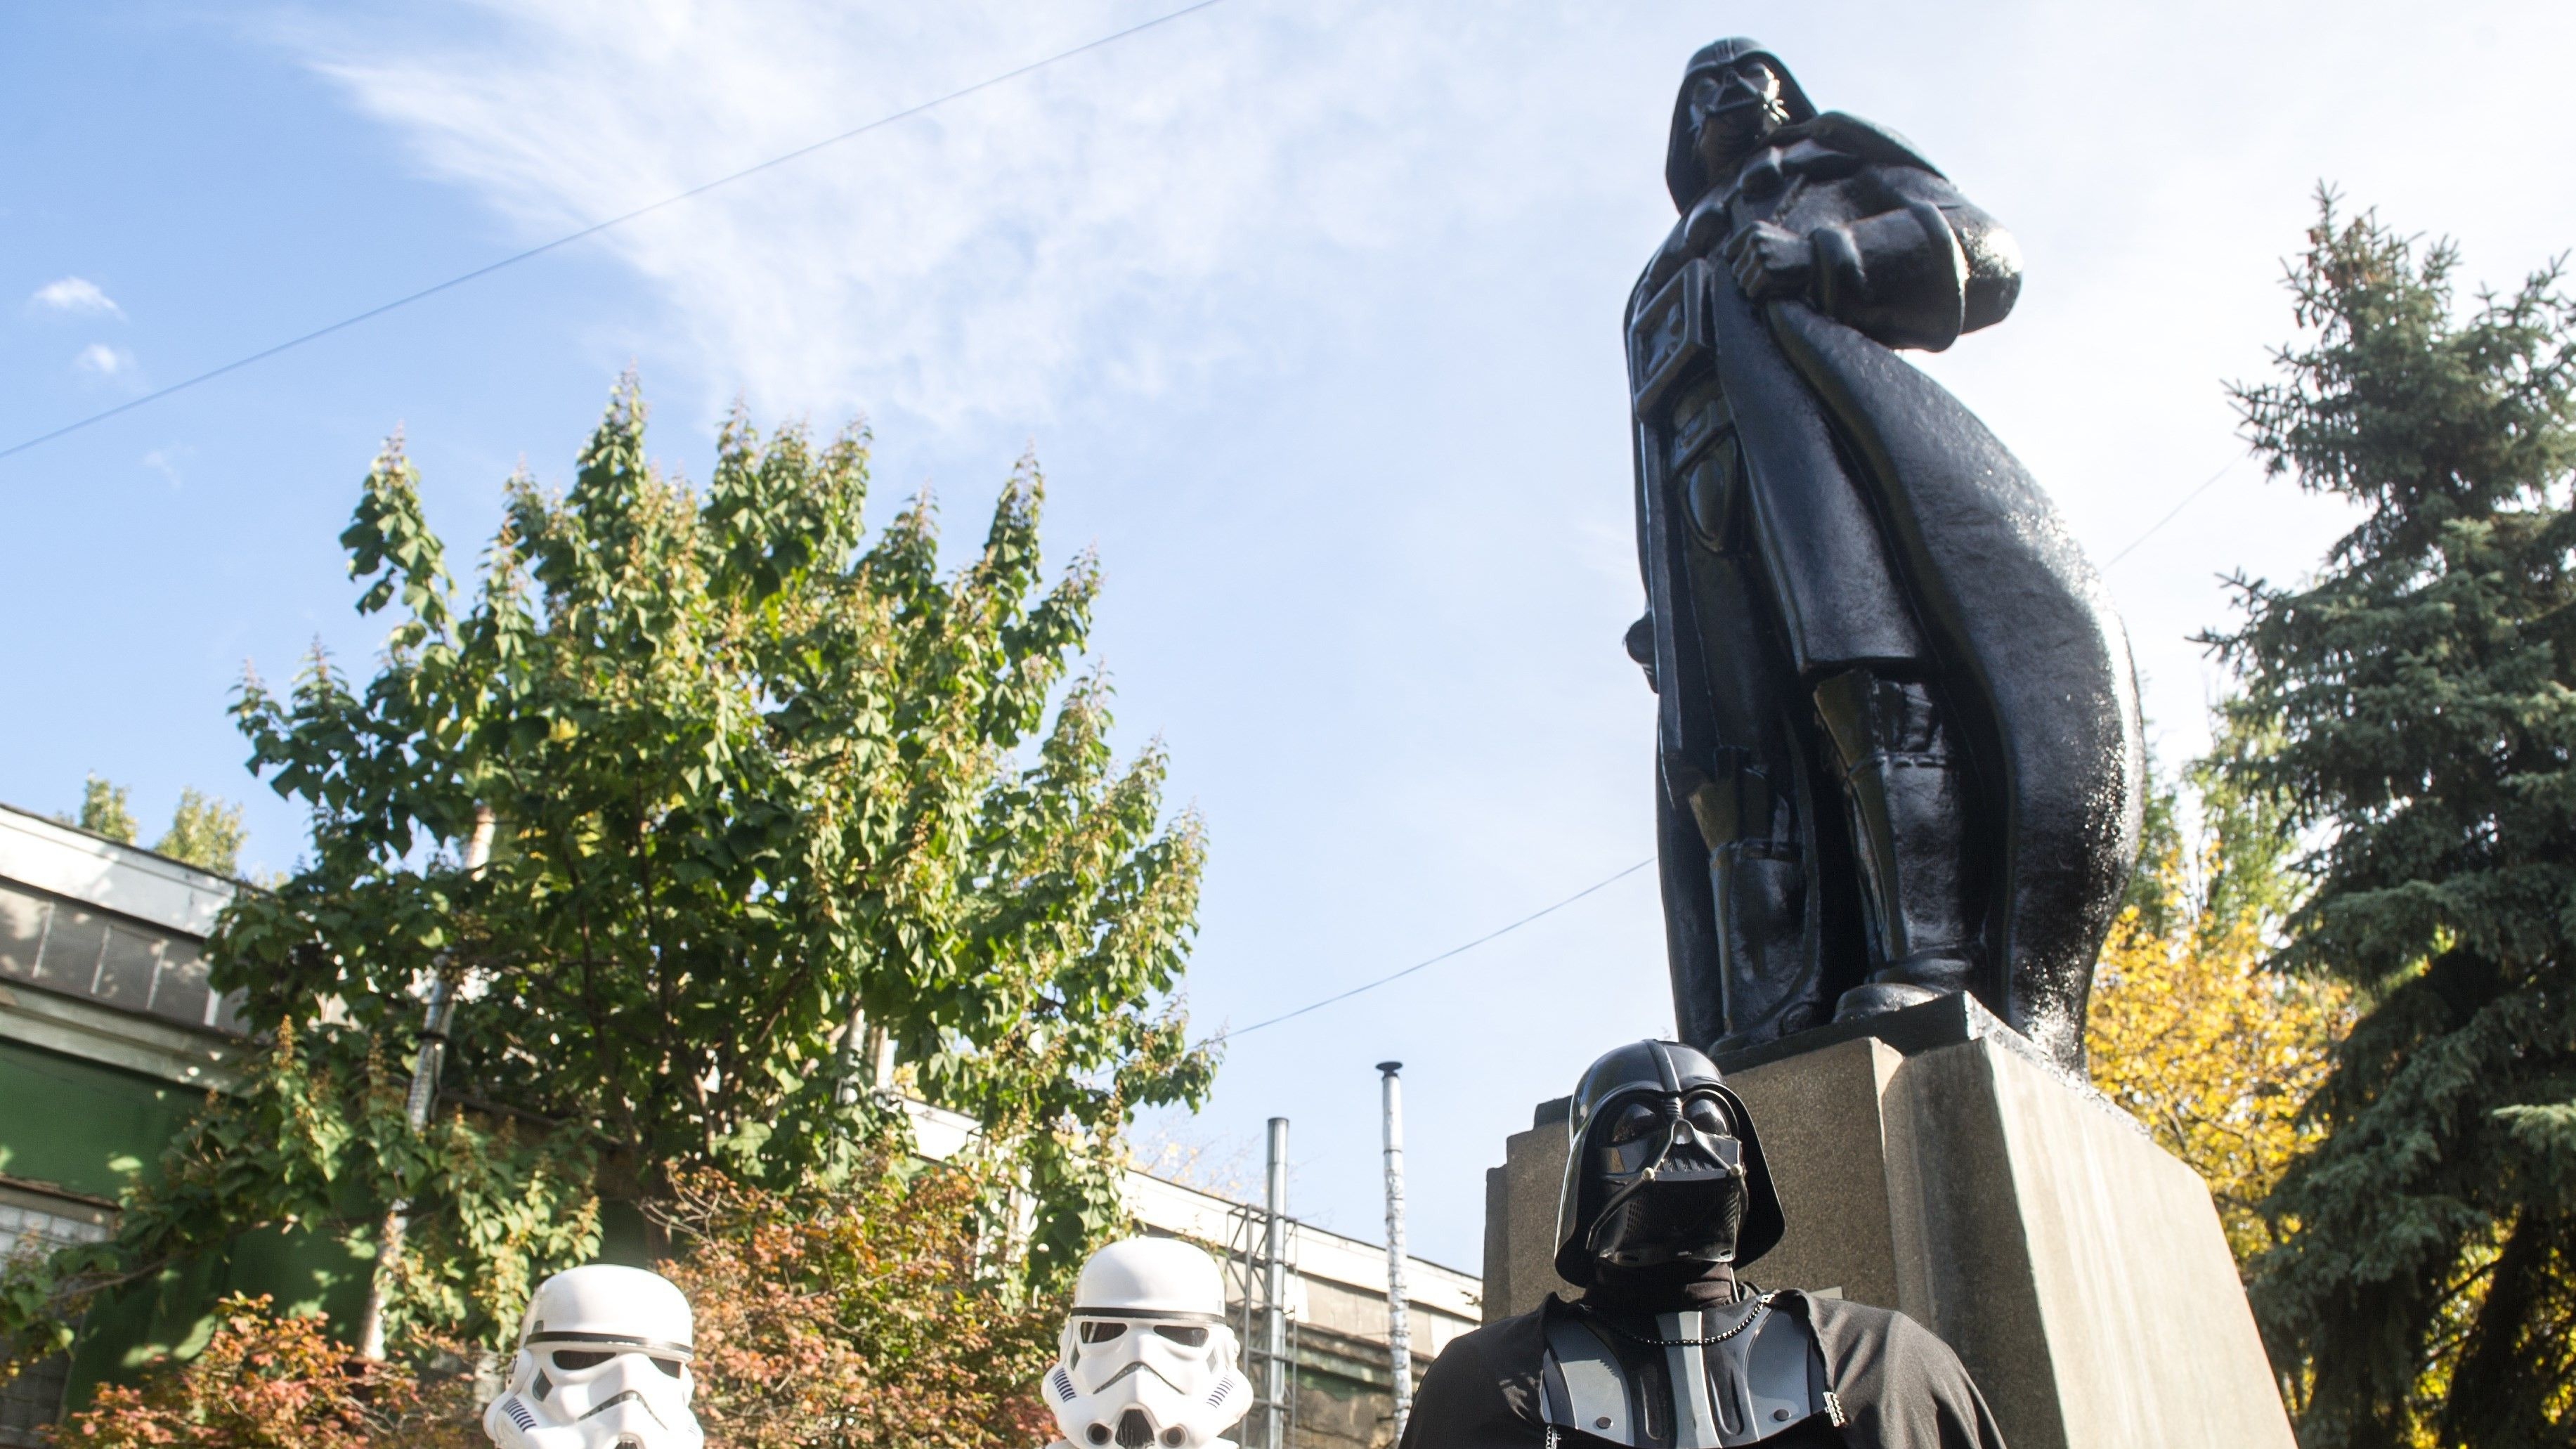 A Ukrainian Artist Decapitated a Statue of Lenin and Replaced It with Darth Vader